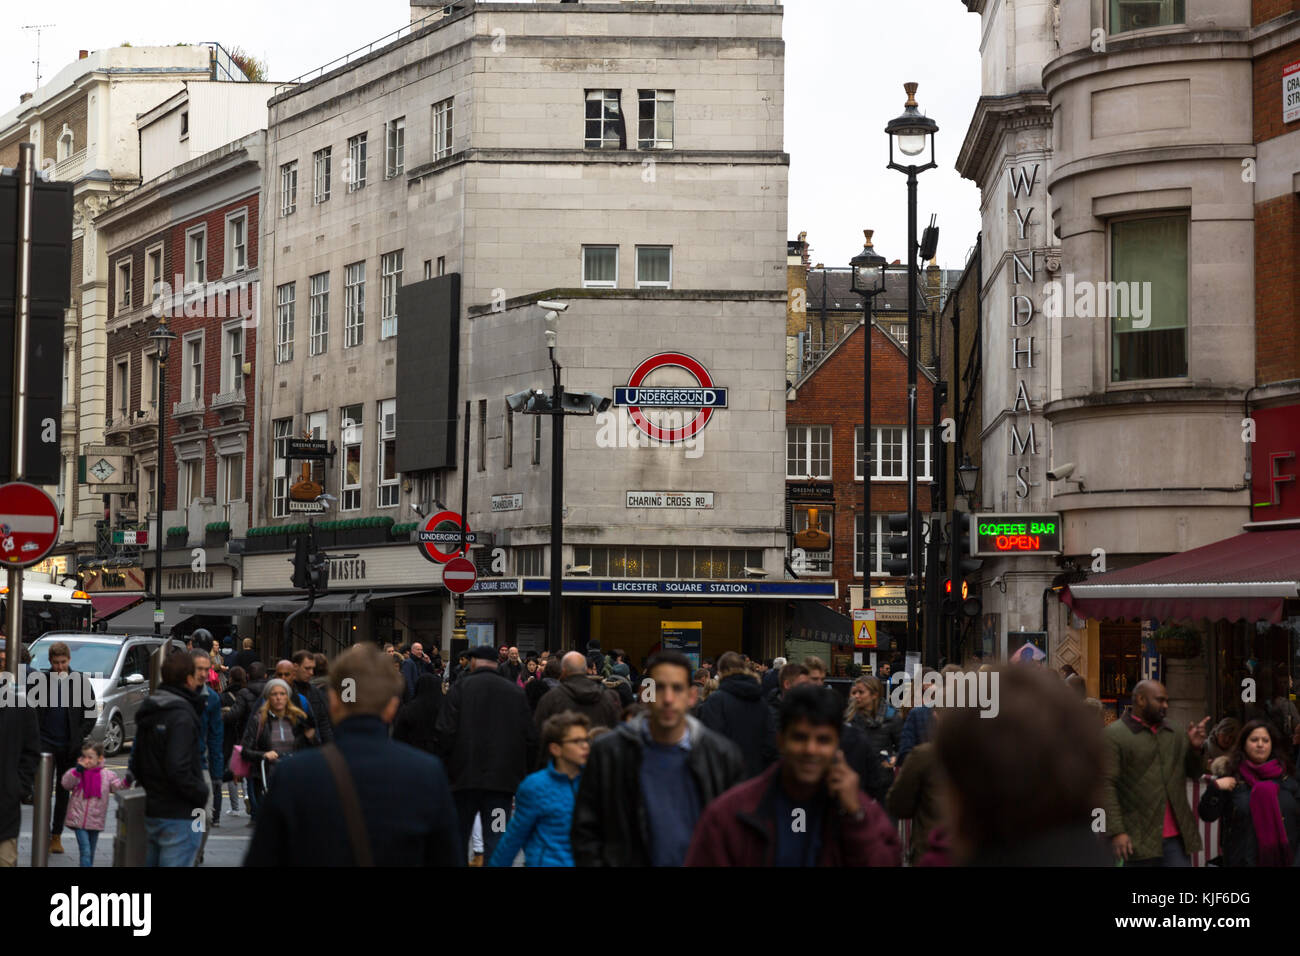 Leicester Square - London, UK - Stock Image